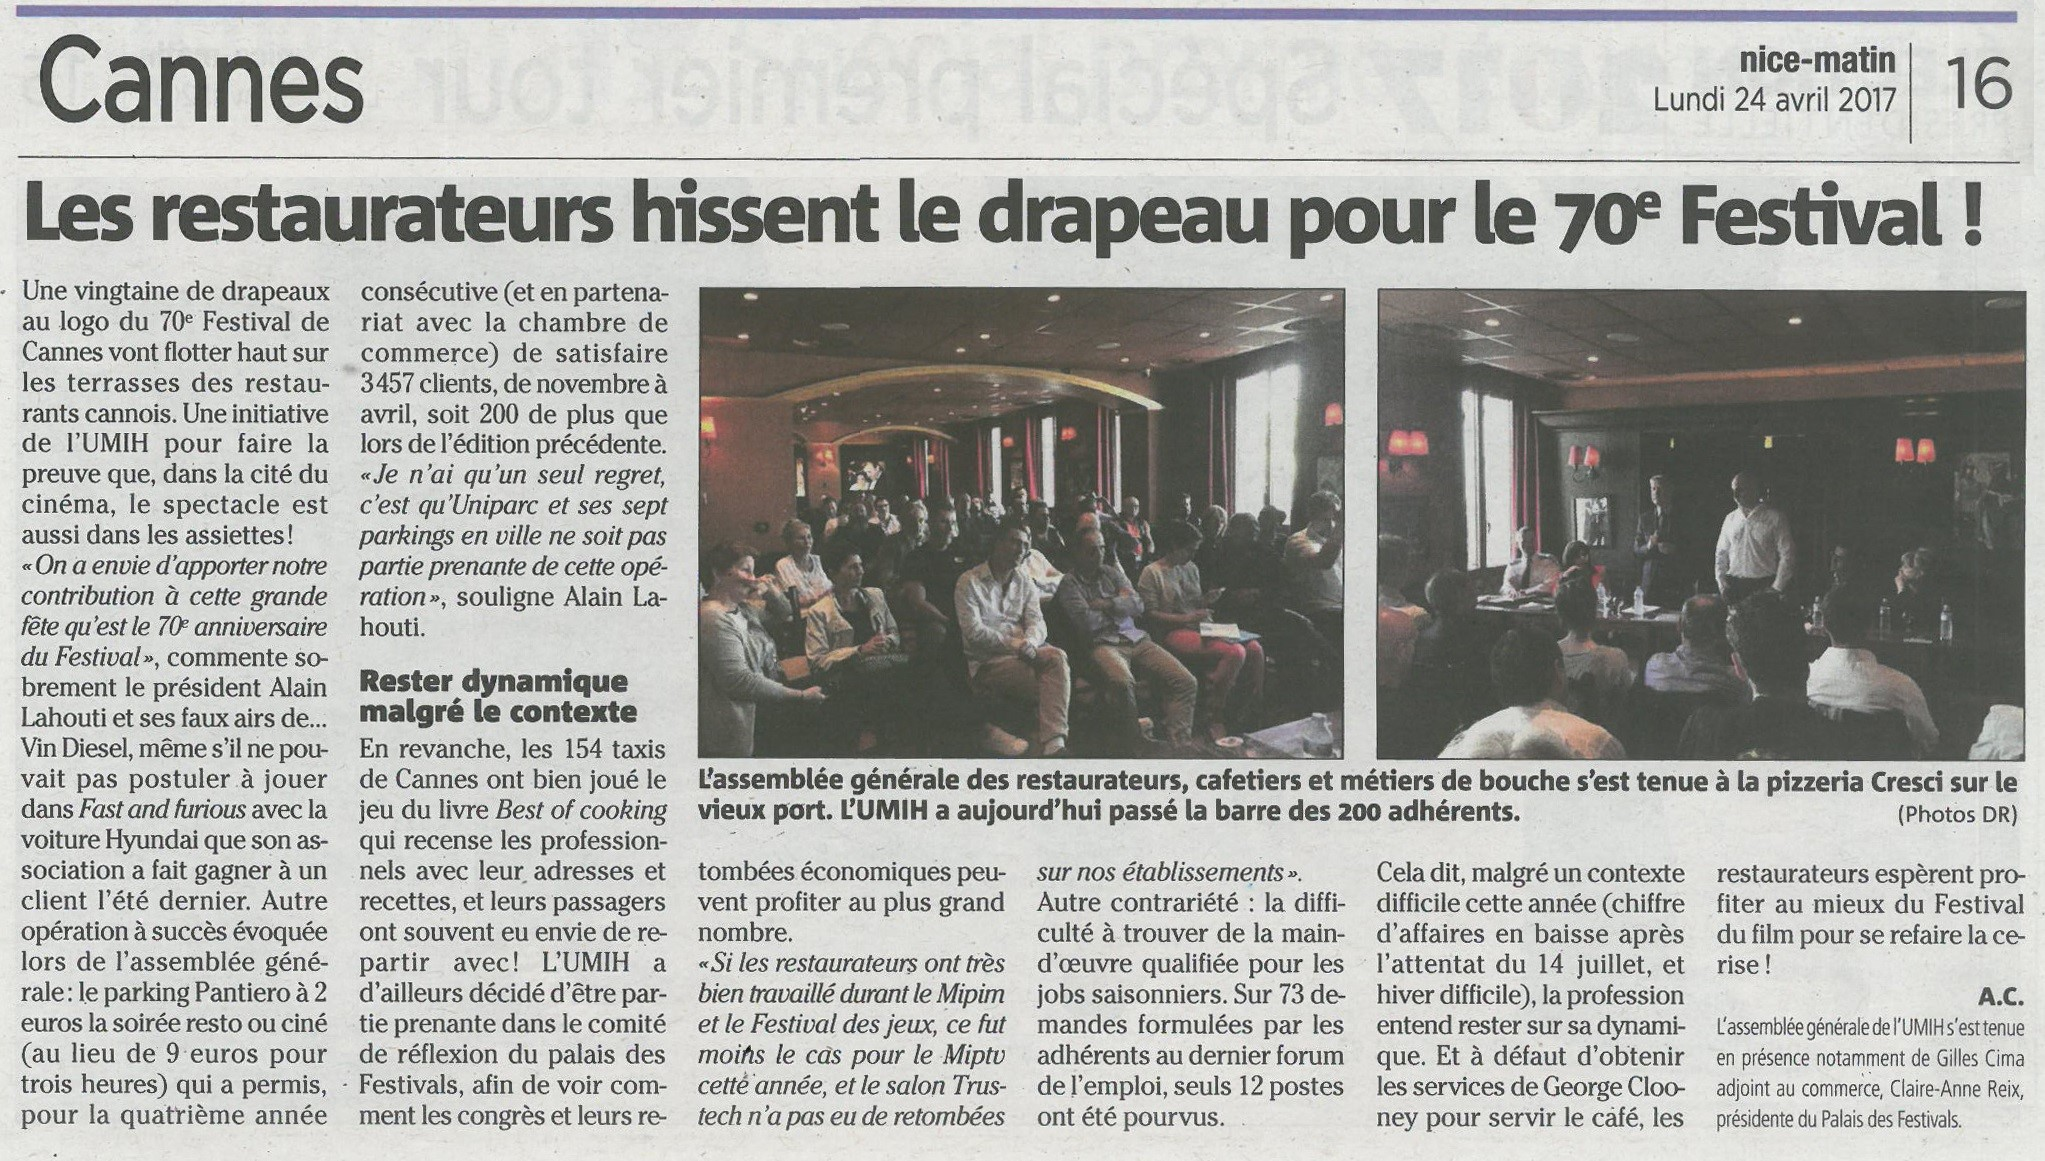 nice-matin-picture.jpg